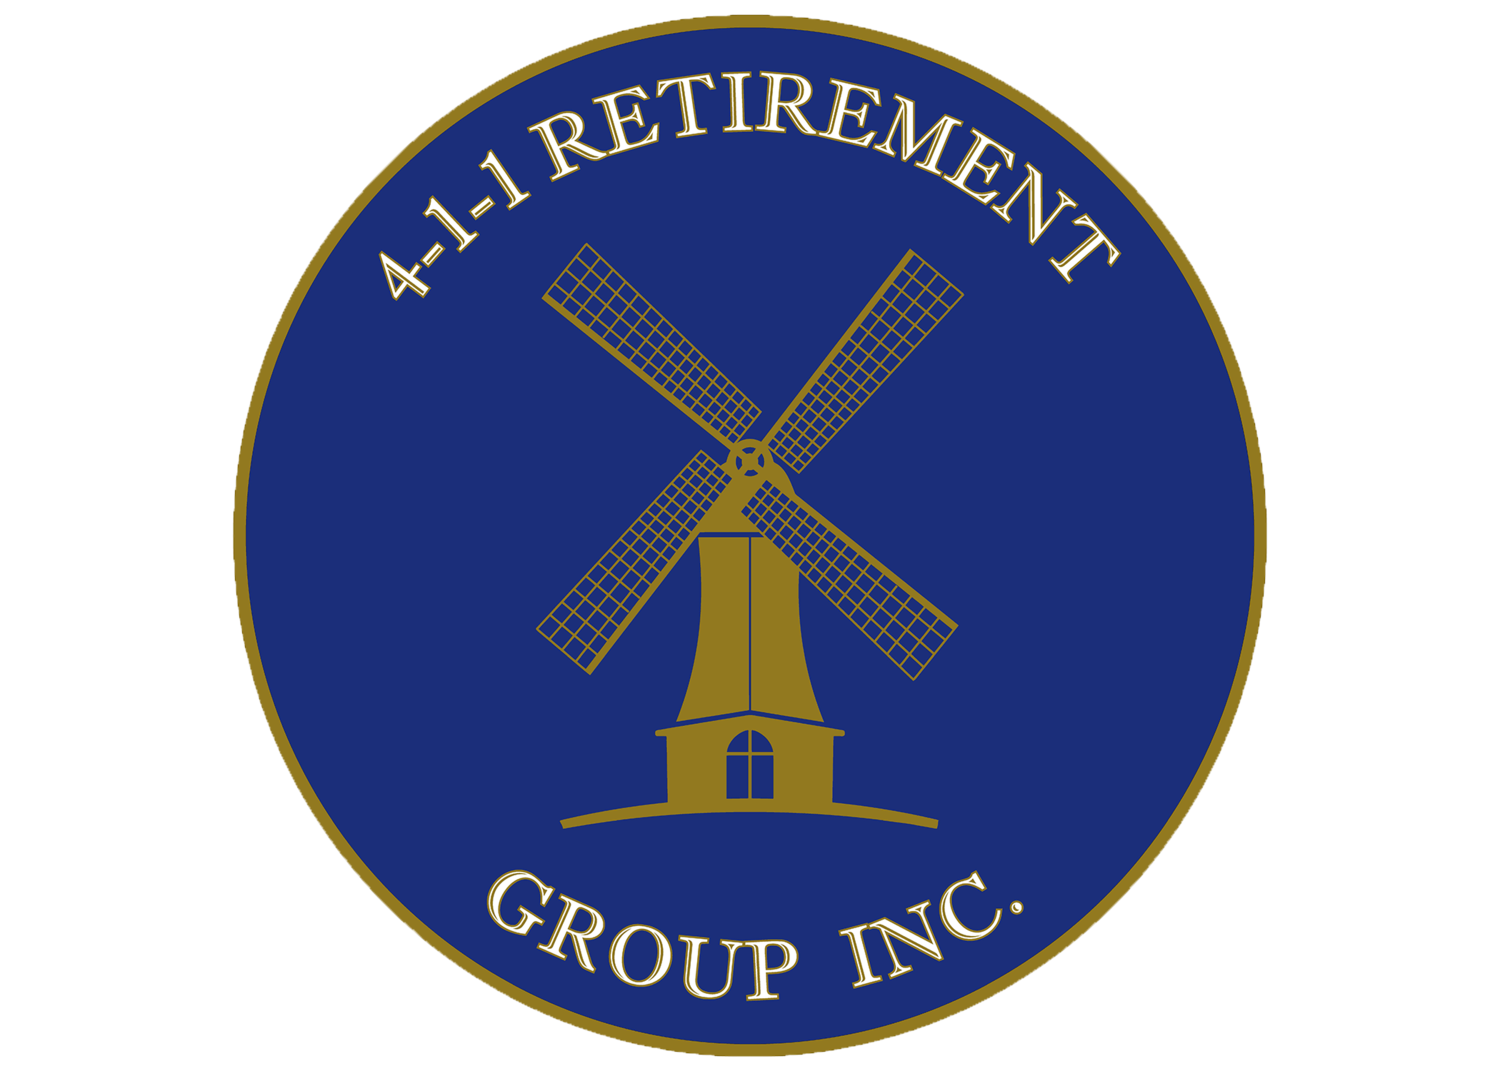 4-1-1 Retirement Group Inc.